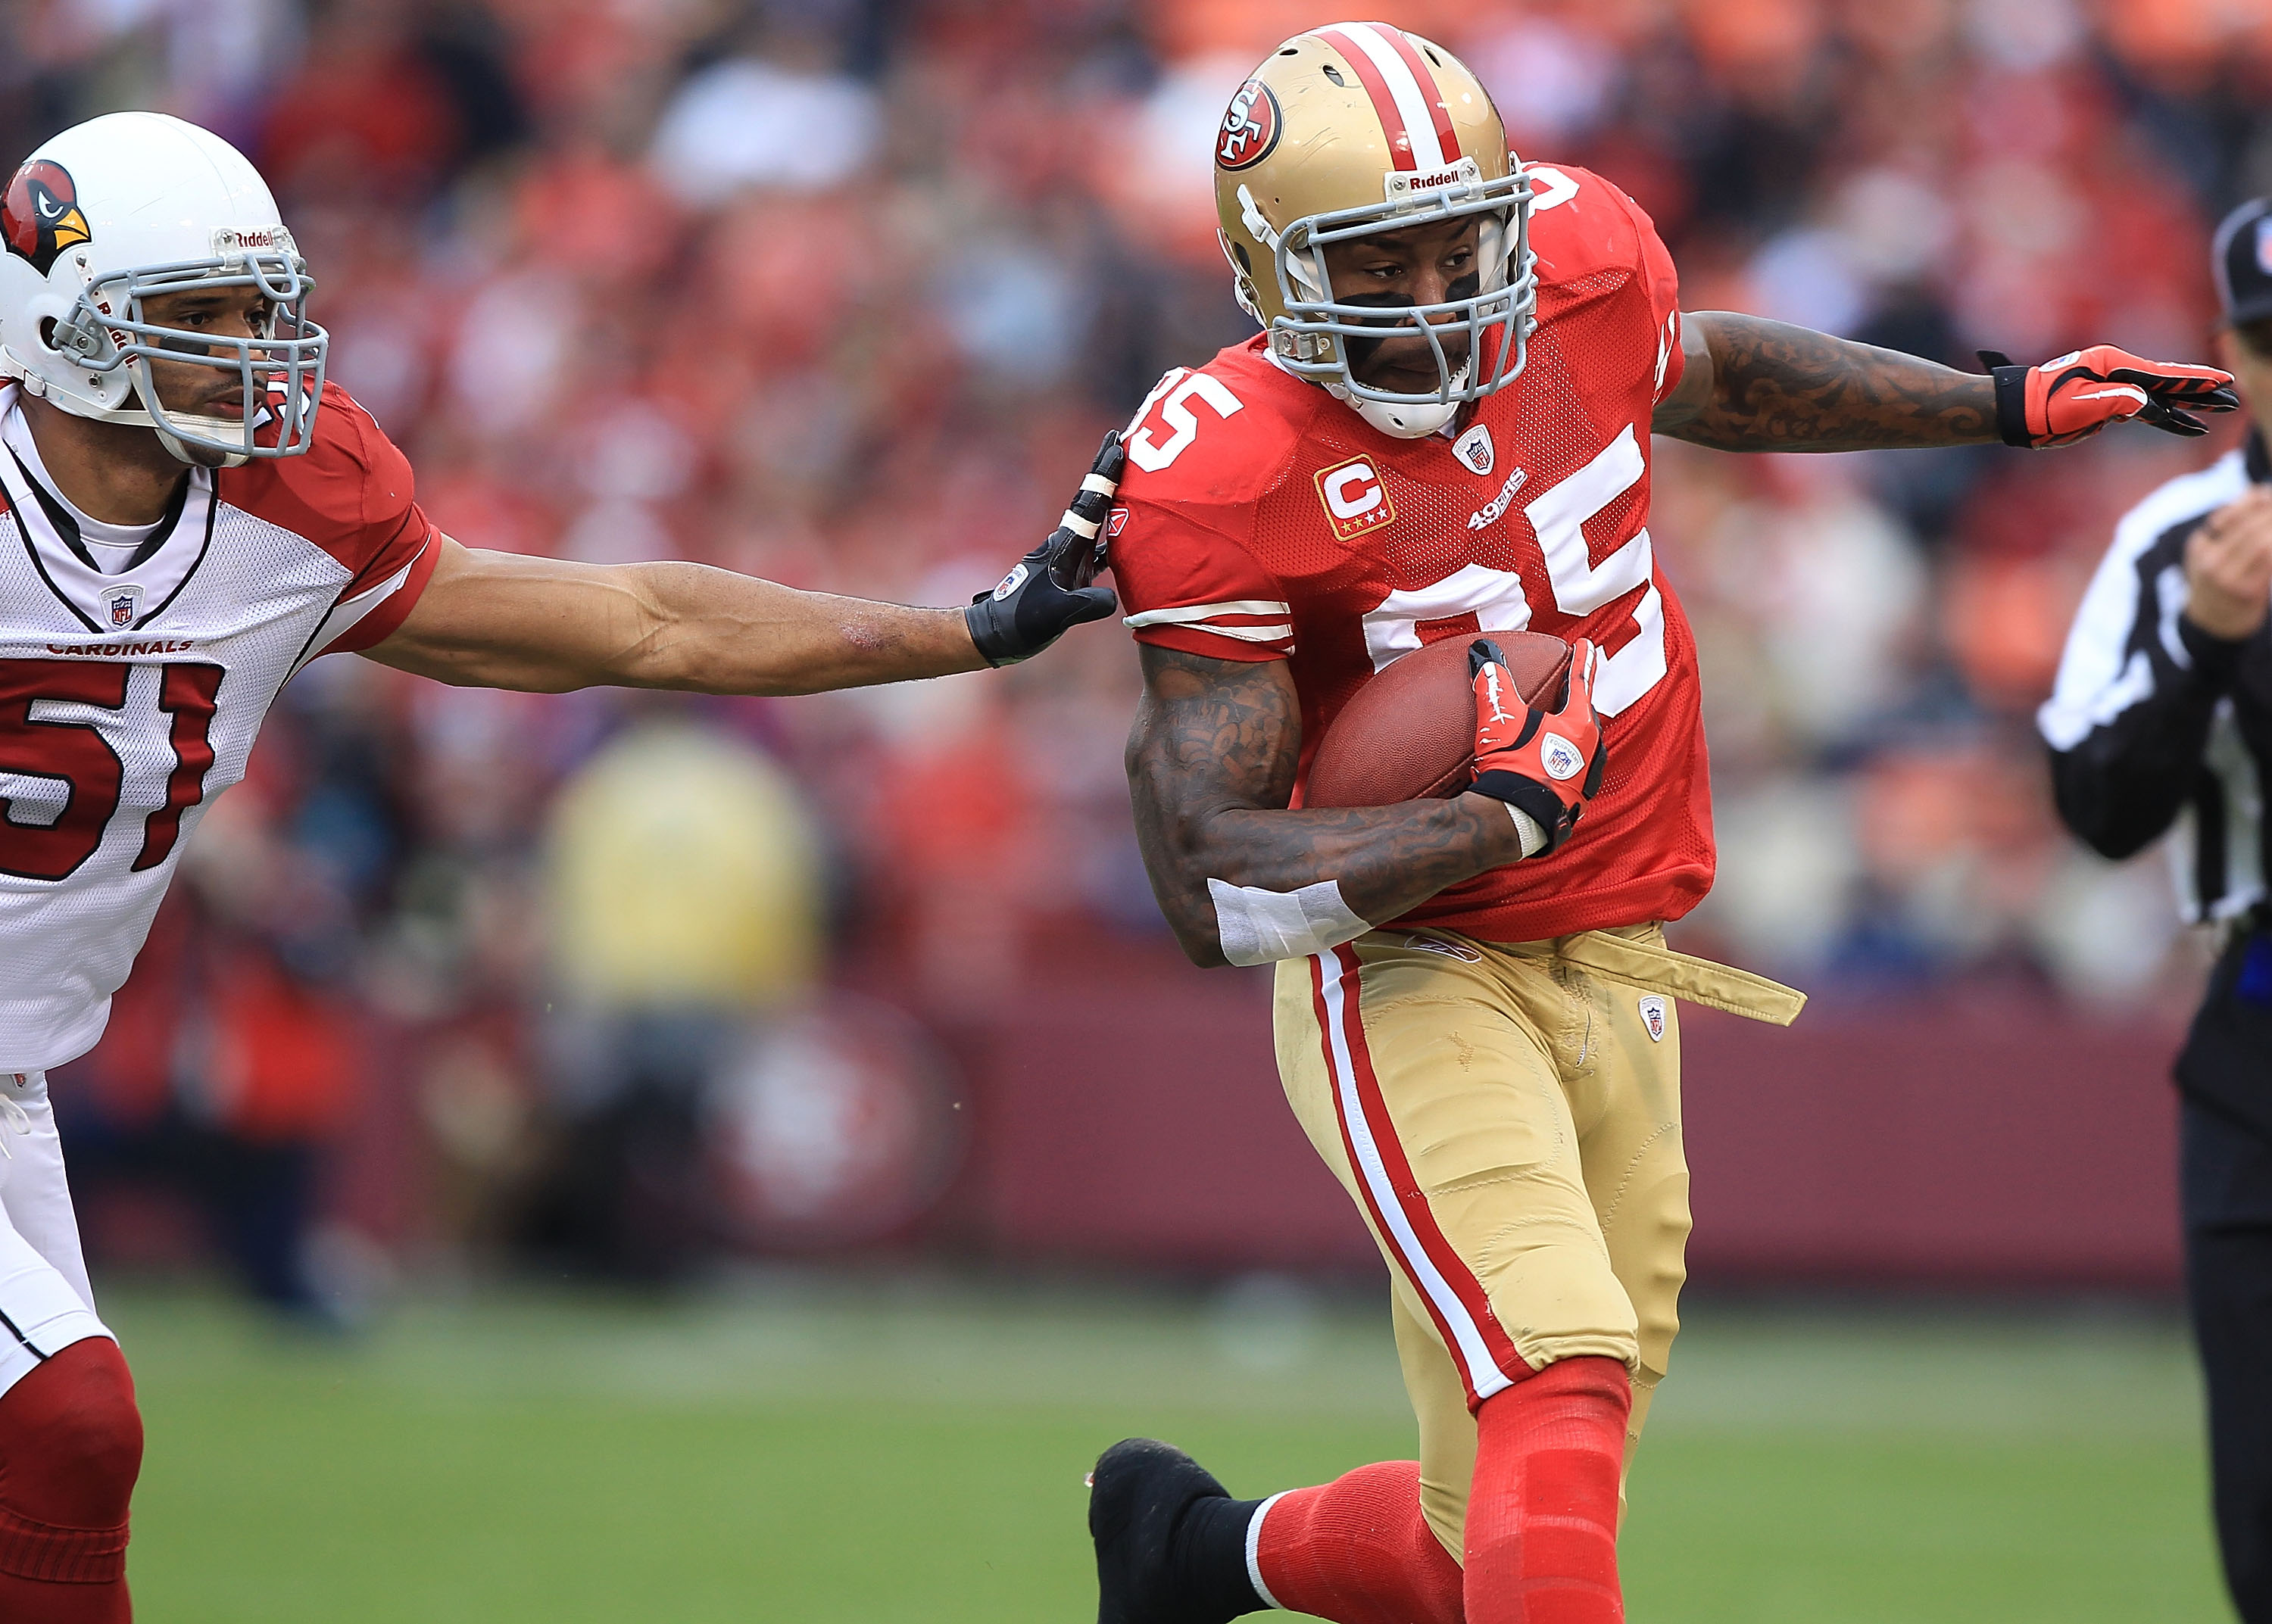 SAN FRANCISCO, CA - JANUARY 02:    Vernon Davis #85 of the San Francisco 49ers runs after a catch against Paris Lenon #51 of the Arizona Cardinals during an NFL game at Candlestick Park on January 2, 2011 in San Francisco, California.  (Photo by Jed Jacob